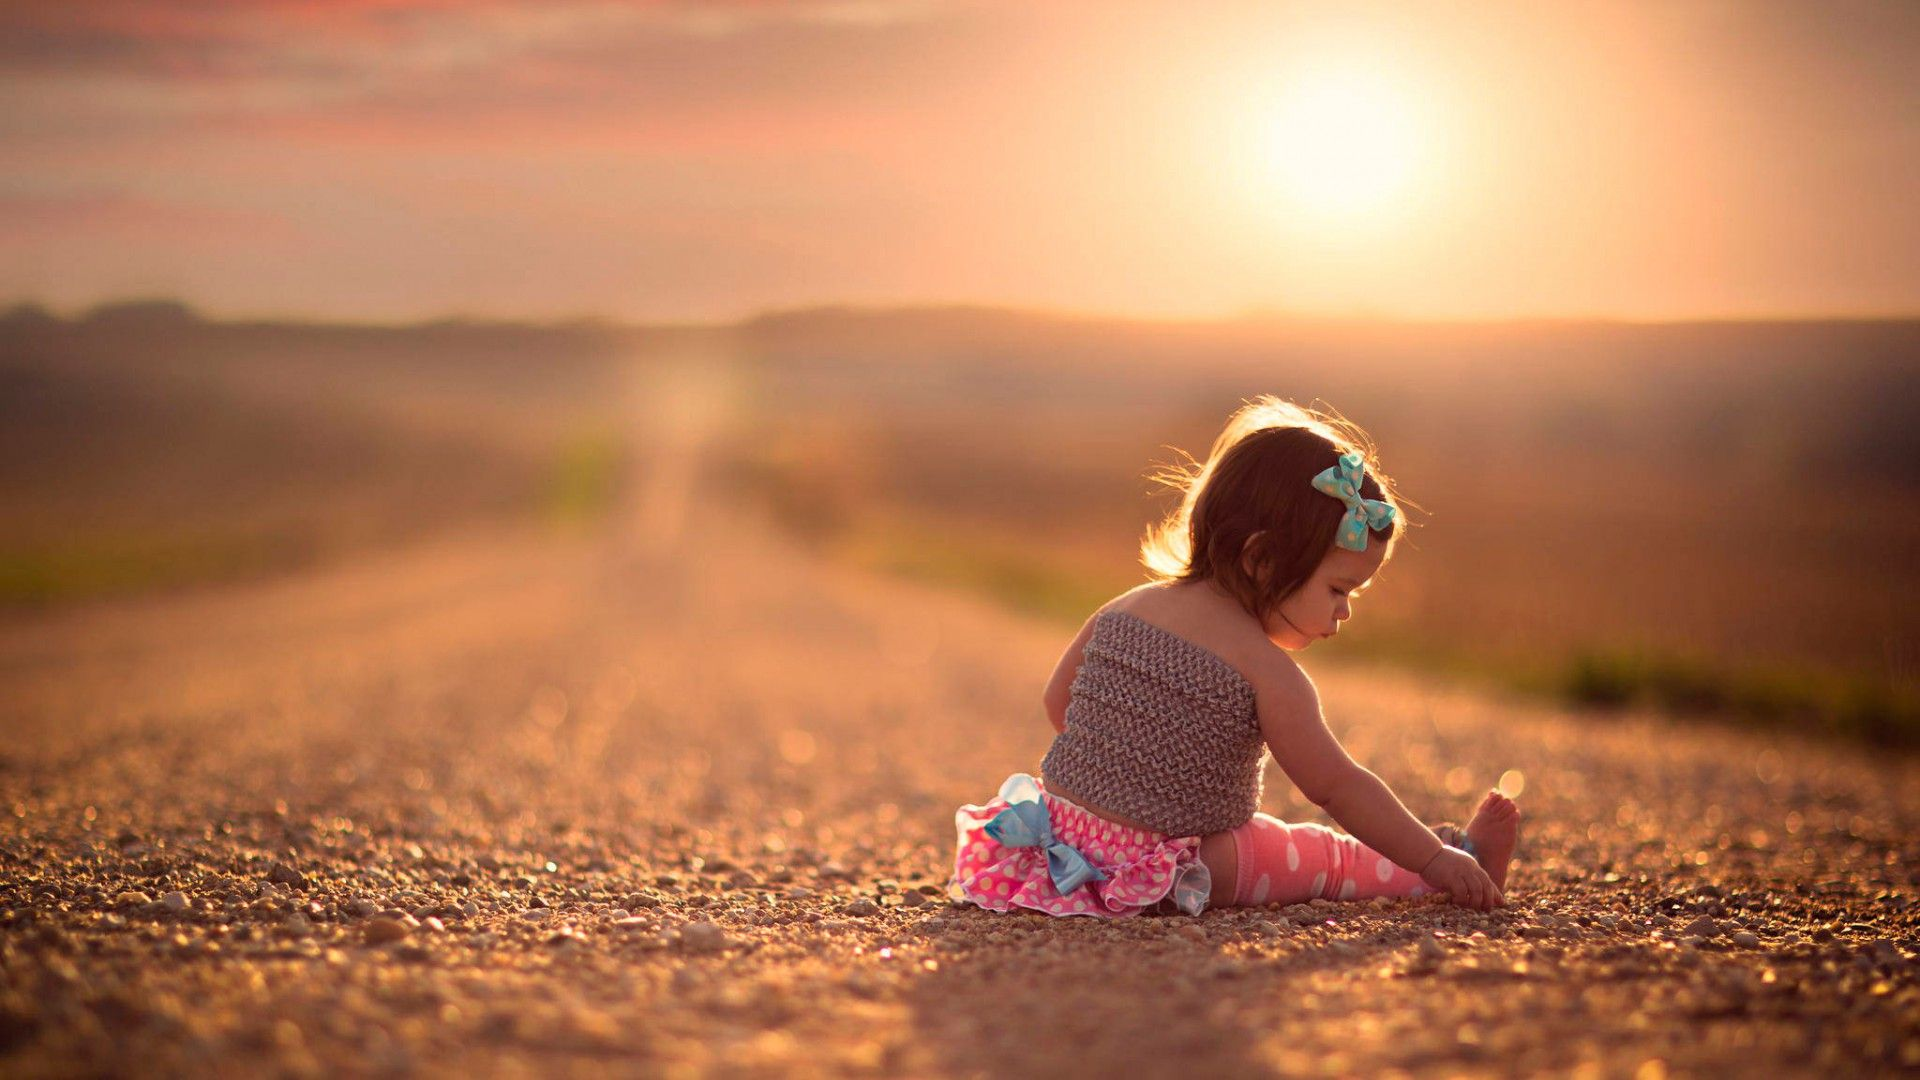 Small child on road [ ] Need iPhone 6S Plus Wallpaper